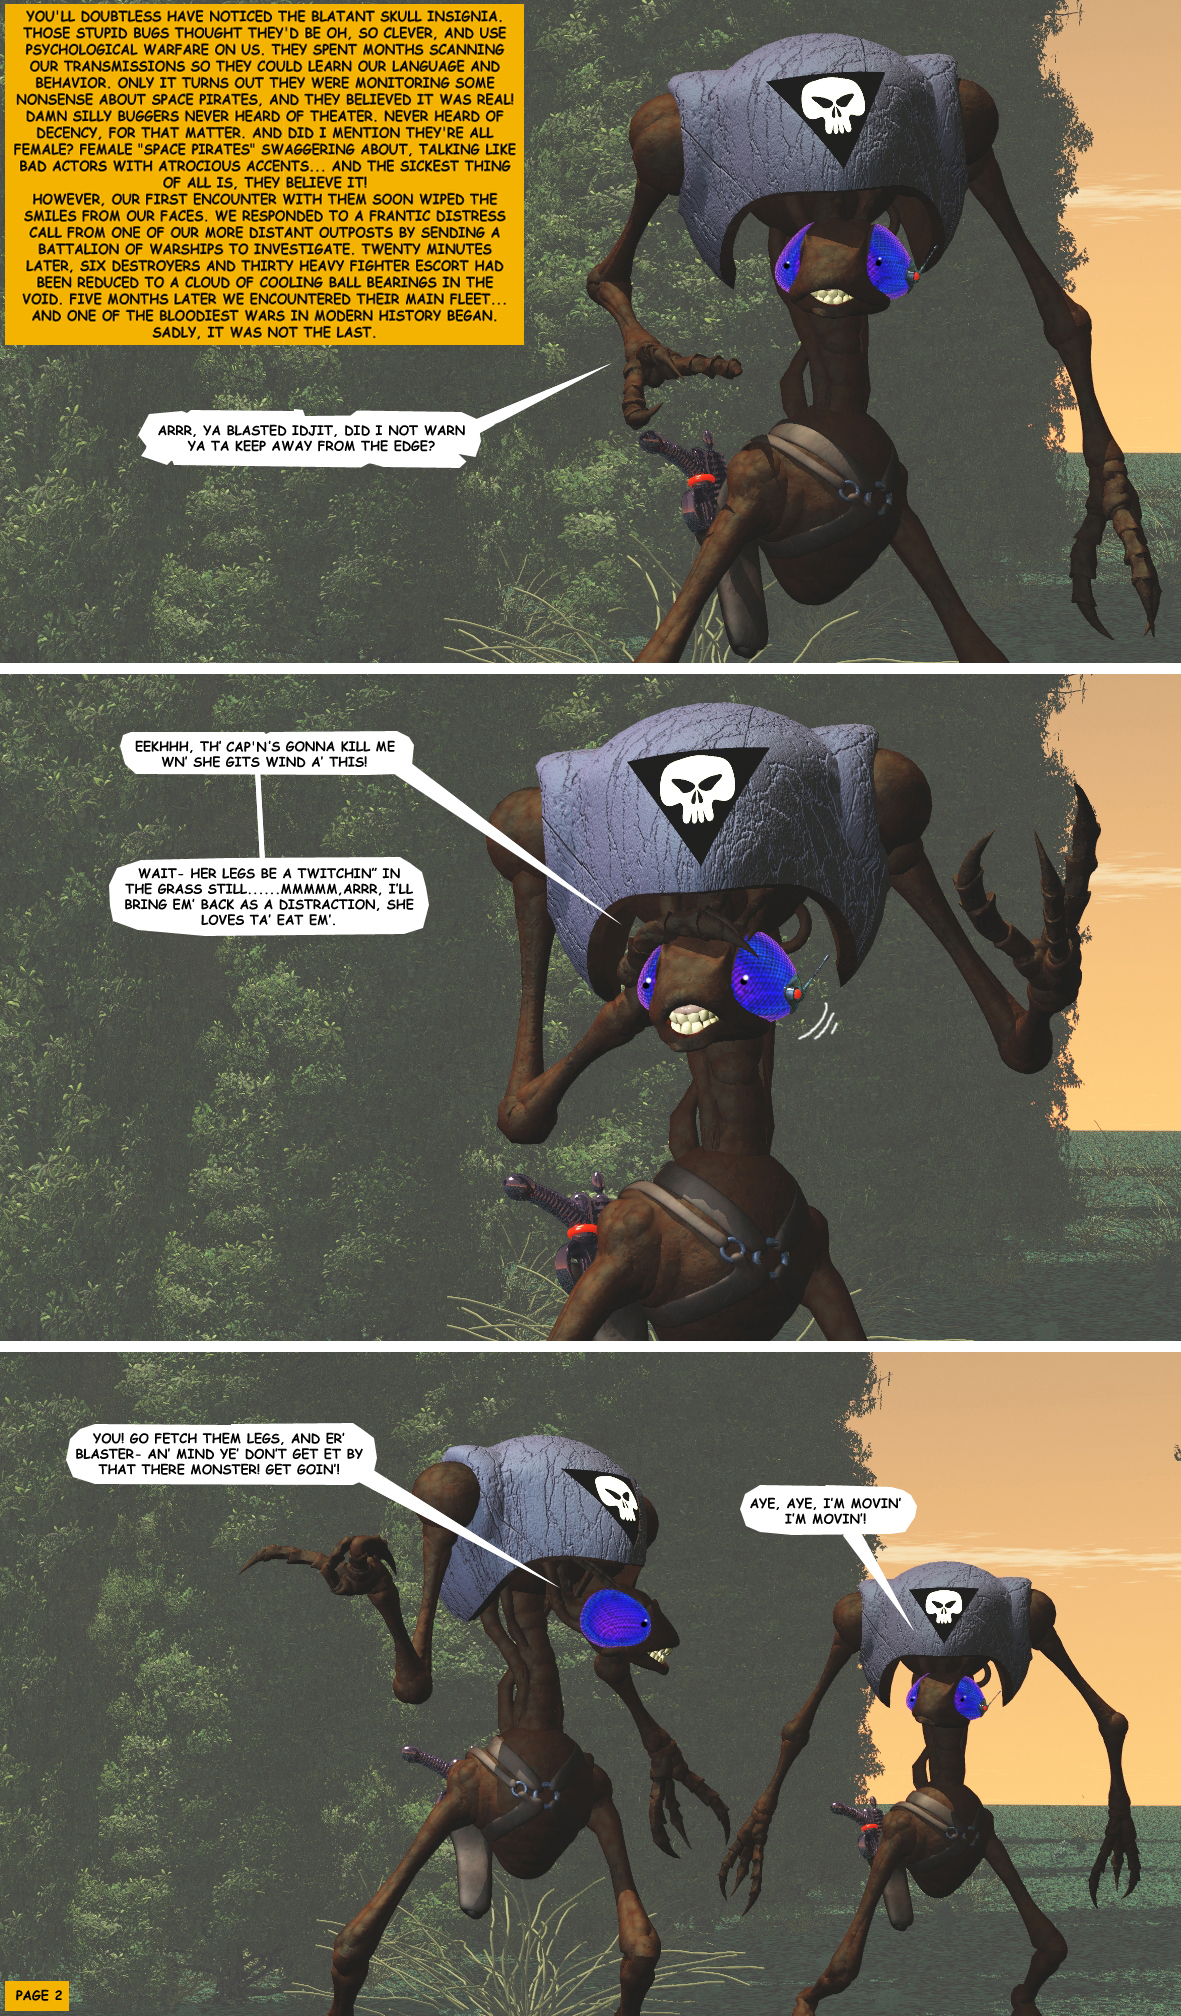 STORM OVER WHOOMERA: PAGE 28